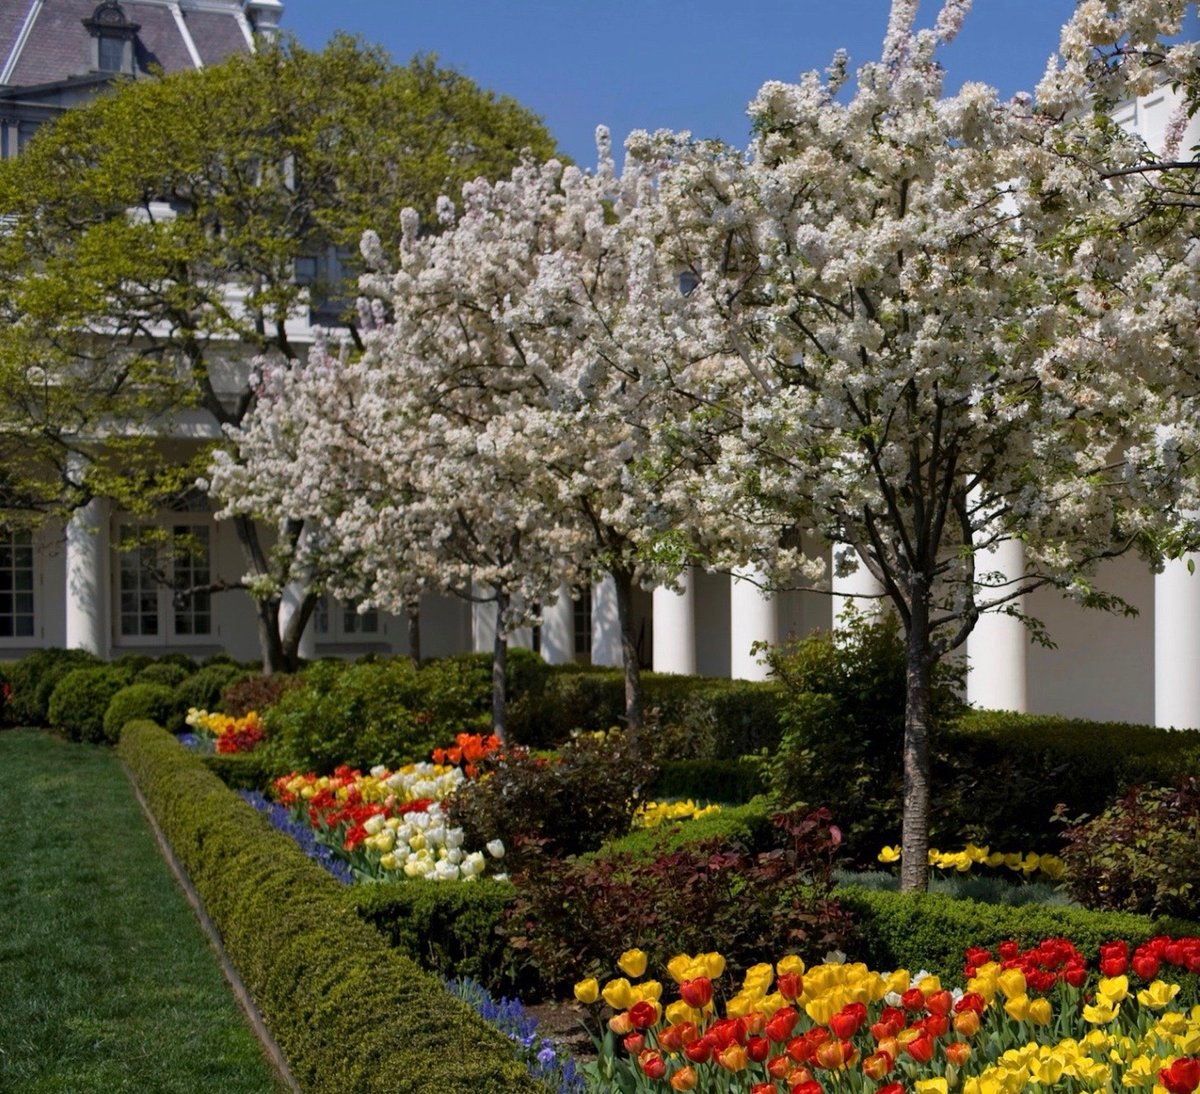 Before and after photographs of newly renovated White House Rose Garden: https://t.co/K8gdCTaY50